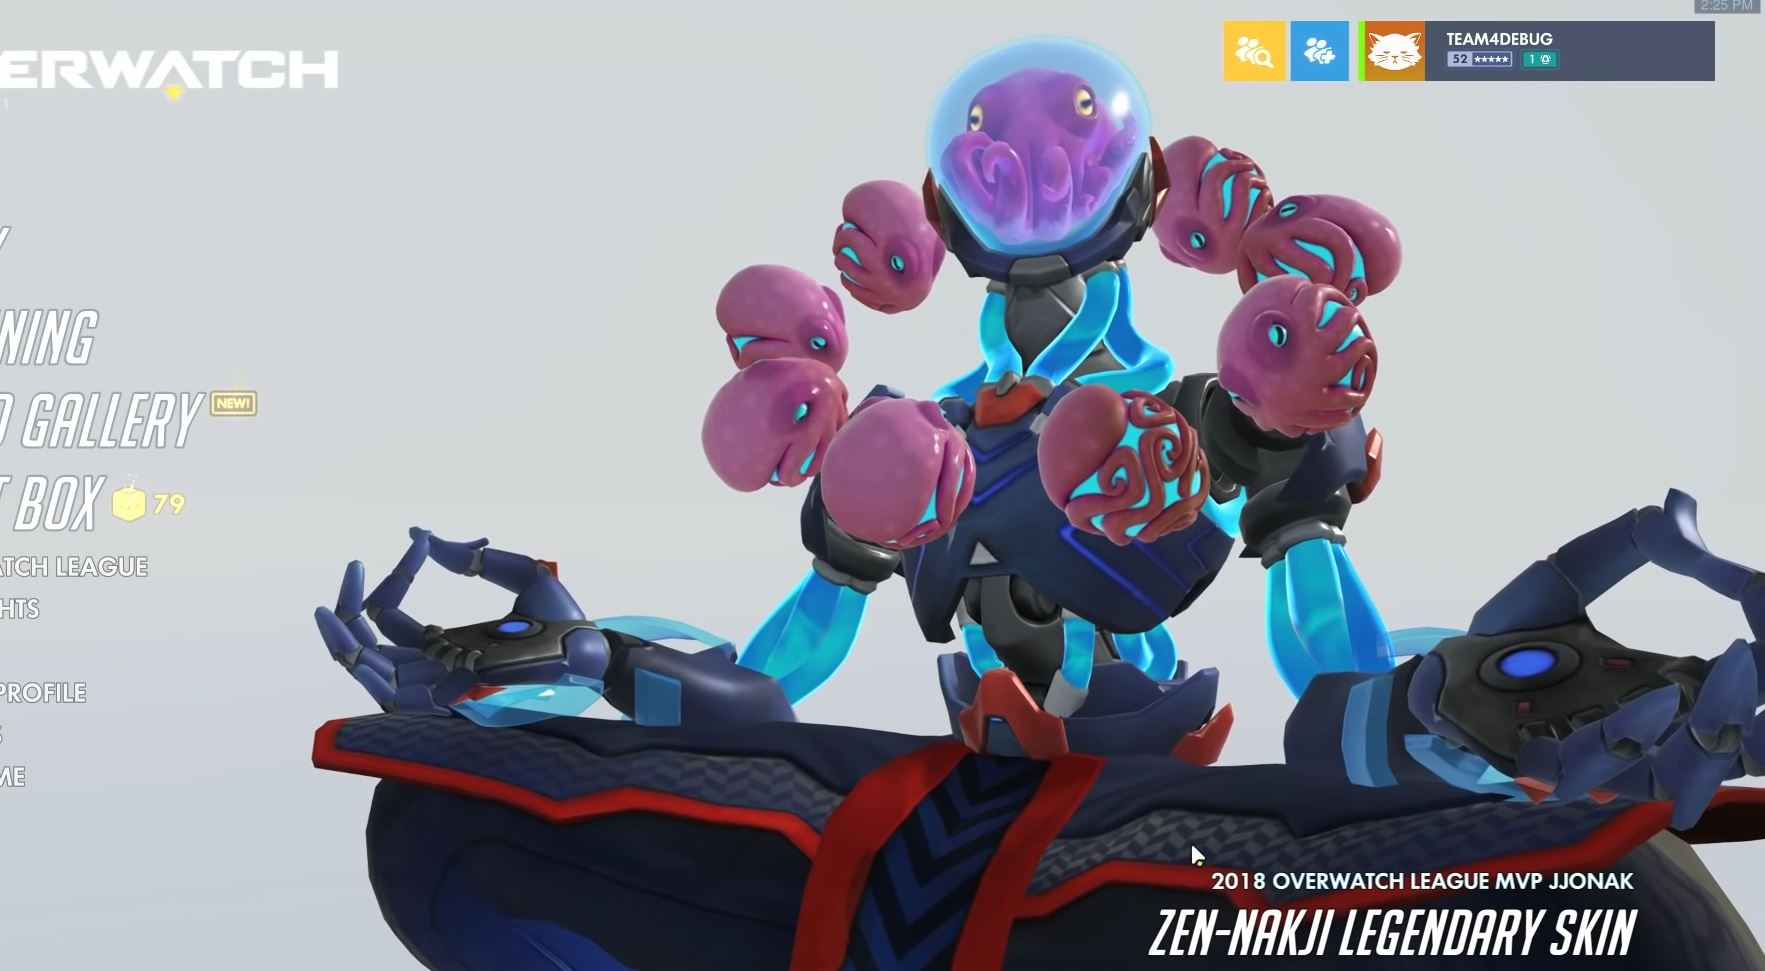 Overwatch's next skin is an octopus-themed tribute to 2018's